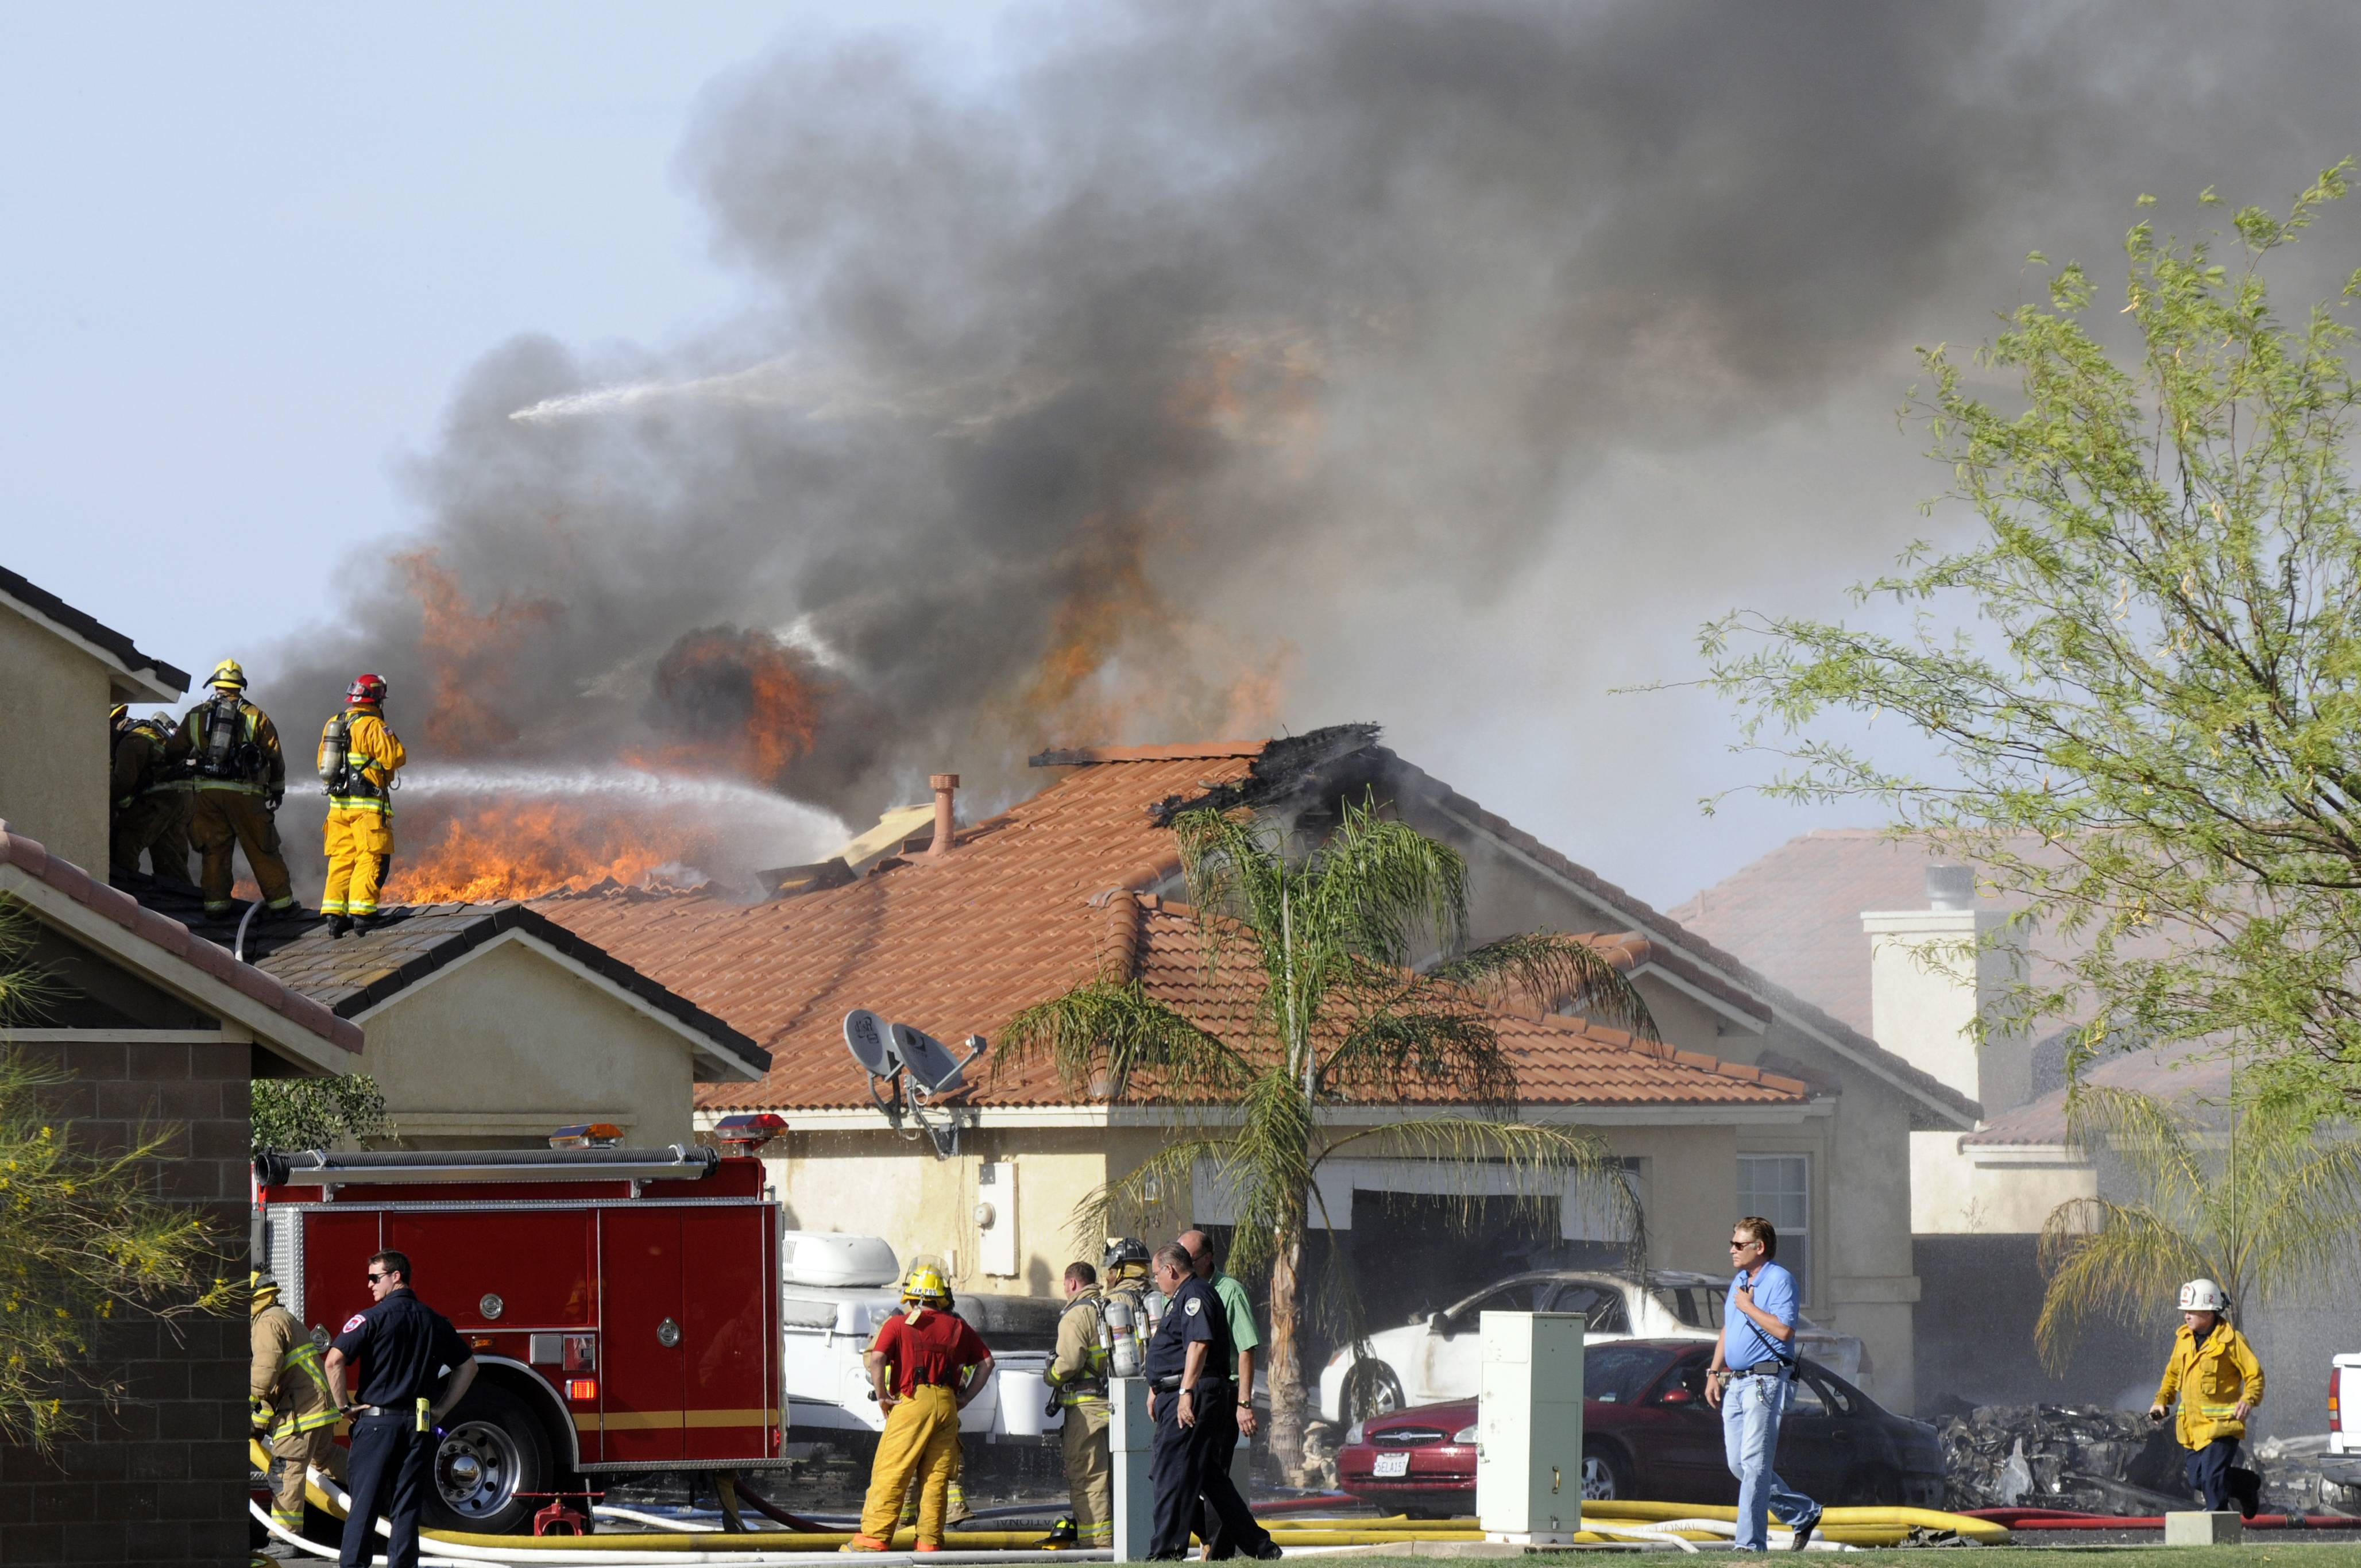 A military jet crashed on a residential street in the desert community of Imperial, Calif., setting two homes on fire Wednesday, June 4, 2014. The jet was a Harrier from Marine Corps Air Station in Yuma, Arizona.